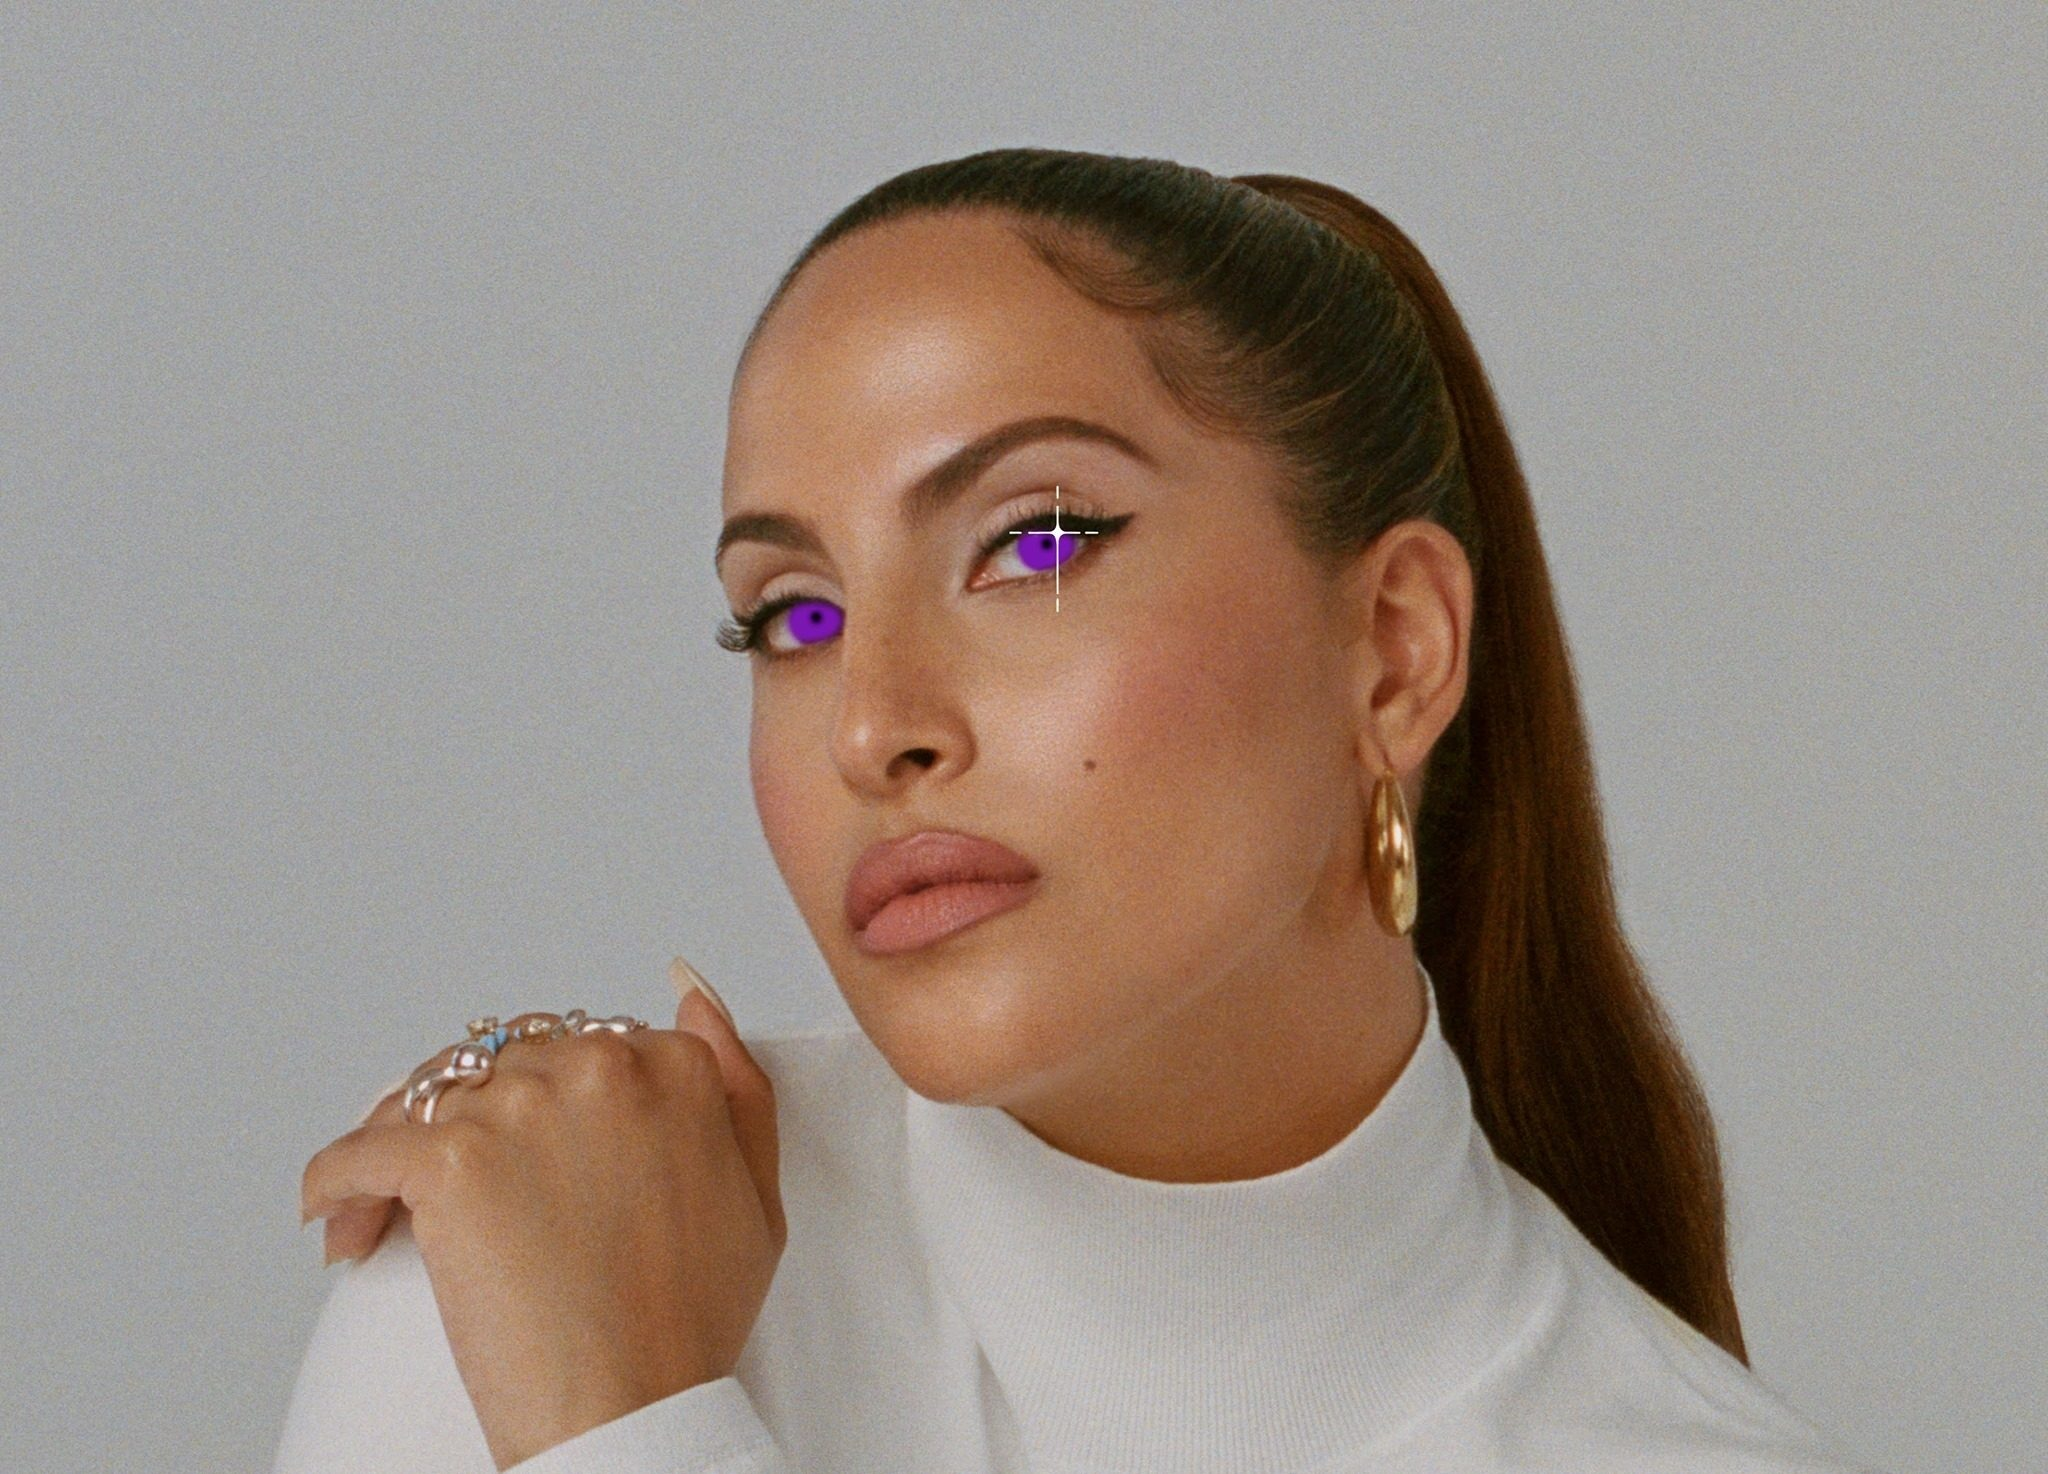 Boomer's Guide: Snoh Aalegra preaches at the altar of '90s jams